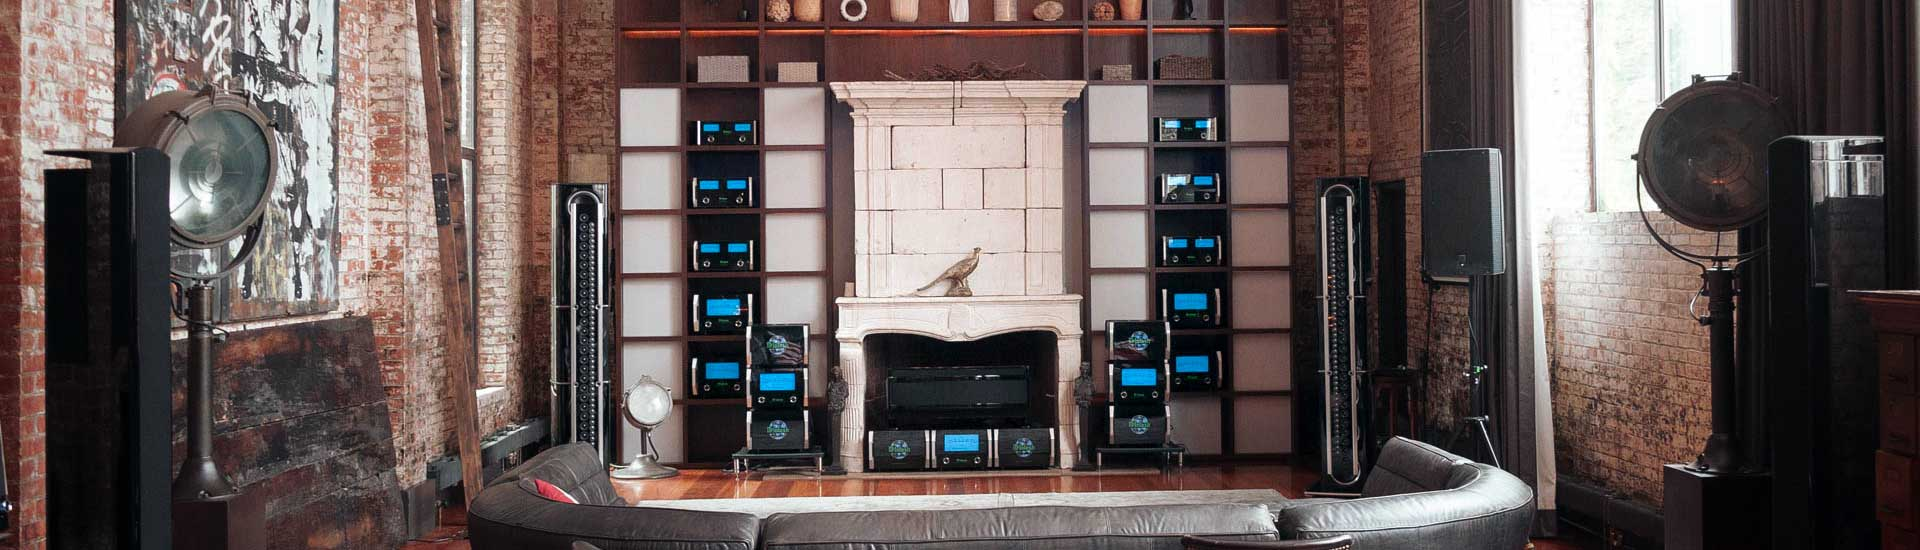 A Tour of The World of McIntosh Townhouse in SoHo